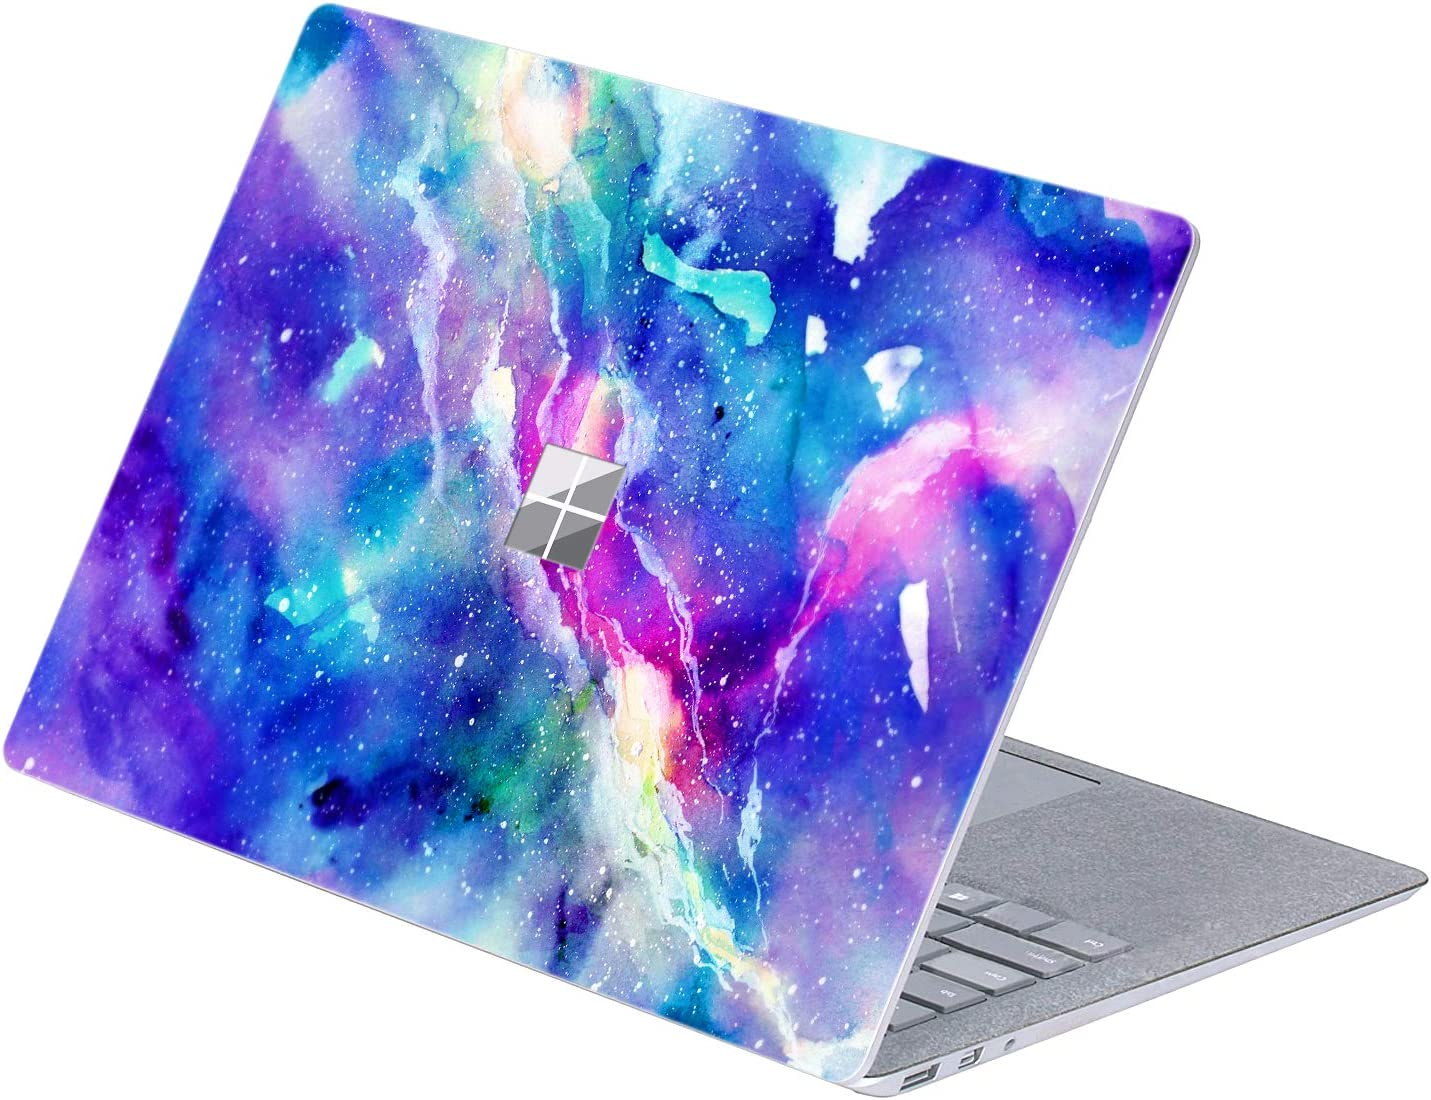 """MasiBloom Top Side Sticker Laptop Decal for 13"""" 13.5 inch Microsoft Surface Laptop 3 & 2 & 1 (2019/18/17 Released) Anti Scratch Protective Skin, Not Compatible with Surface Book(Nebula- Blue/Purple)"""